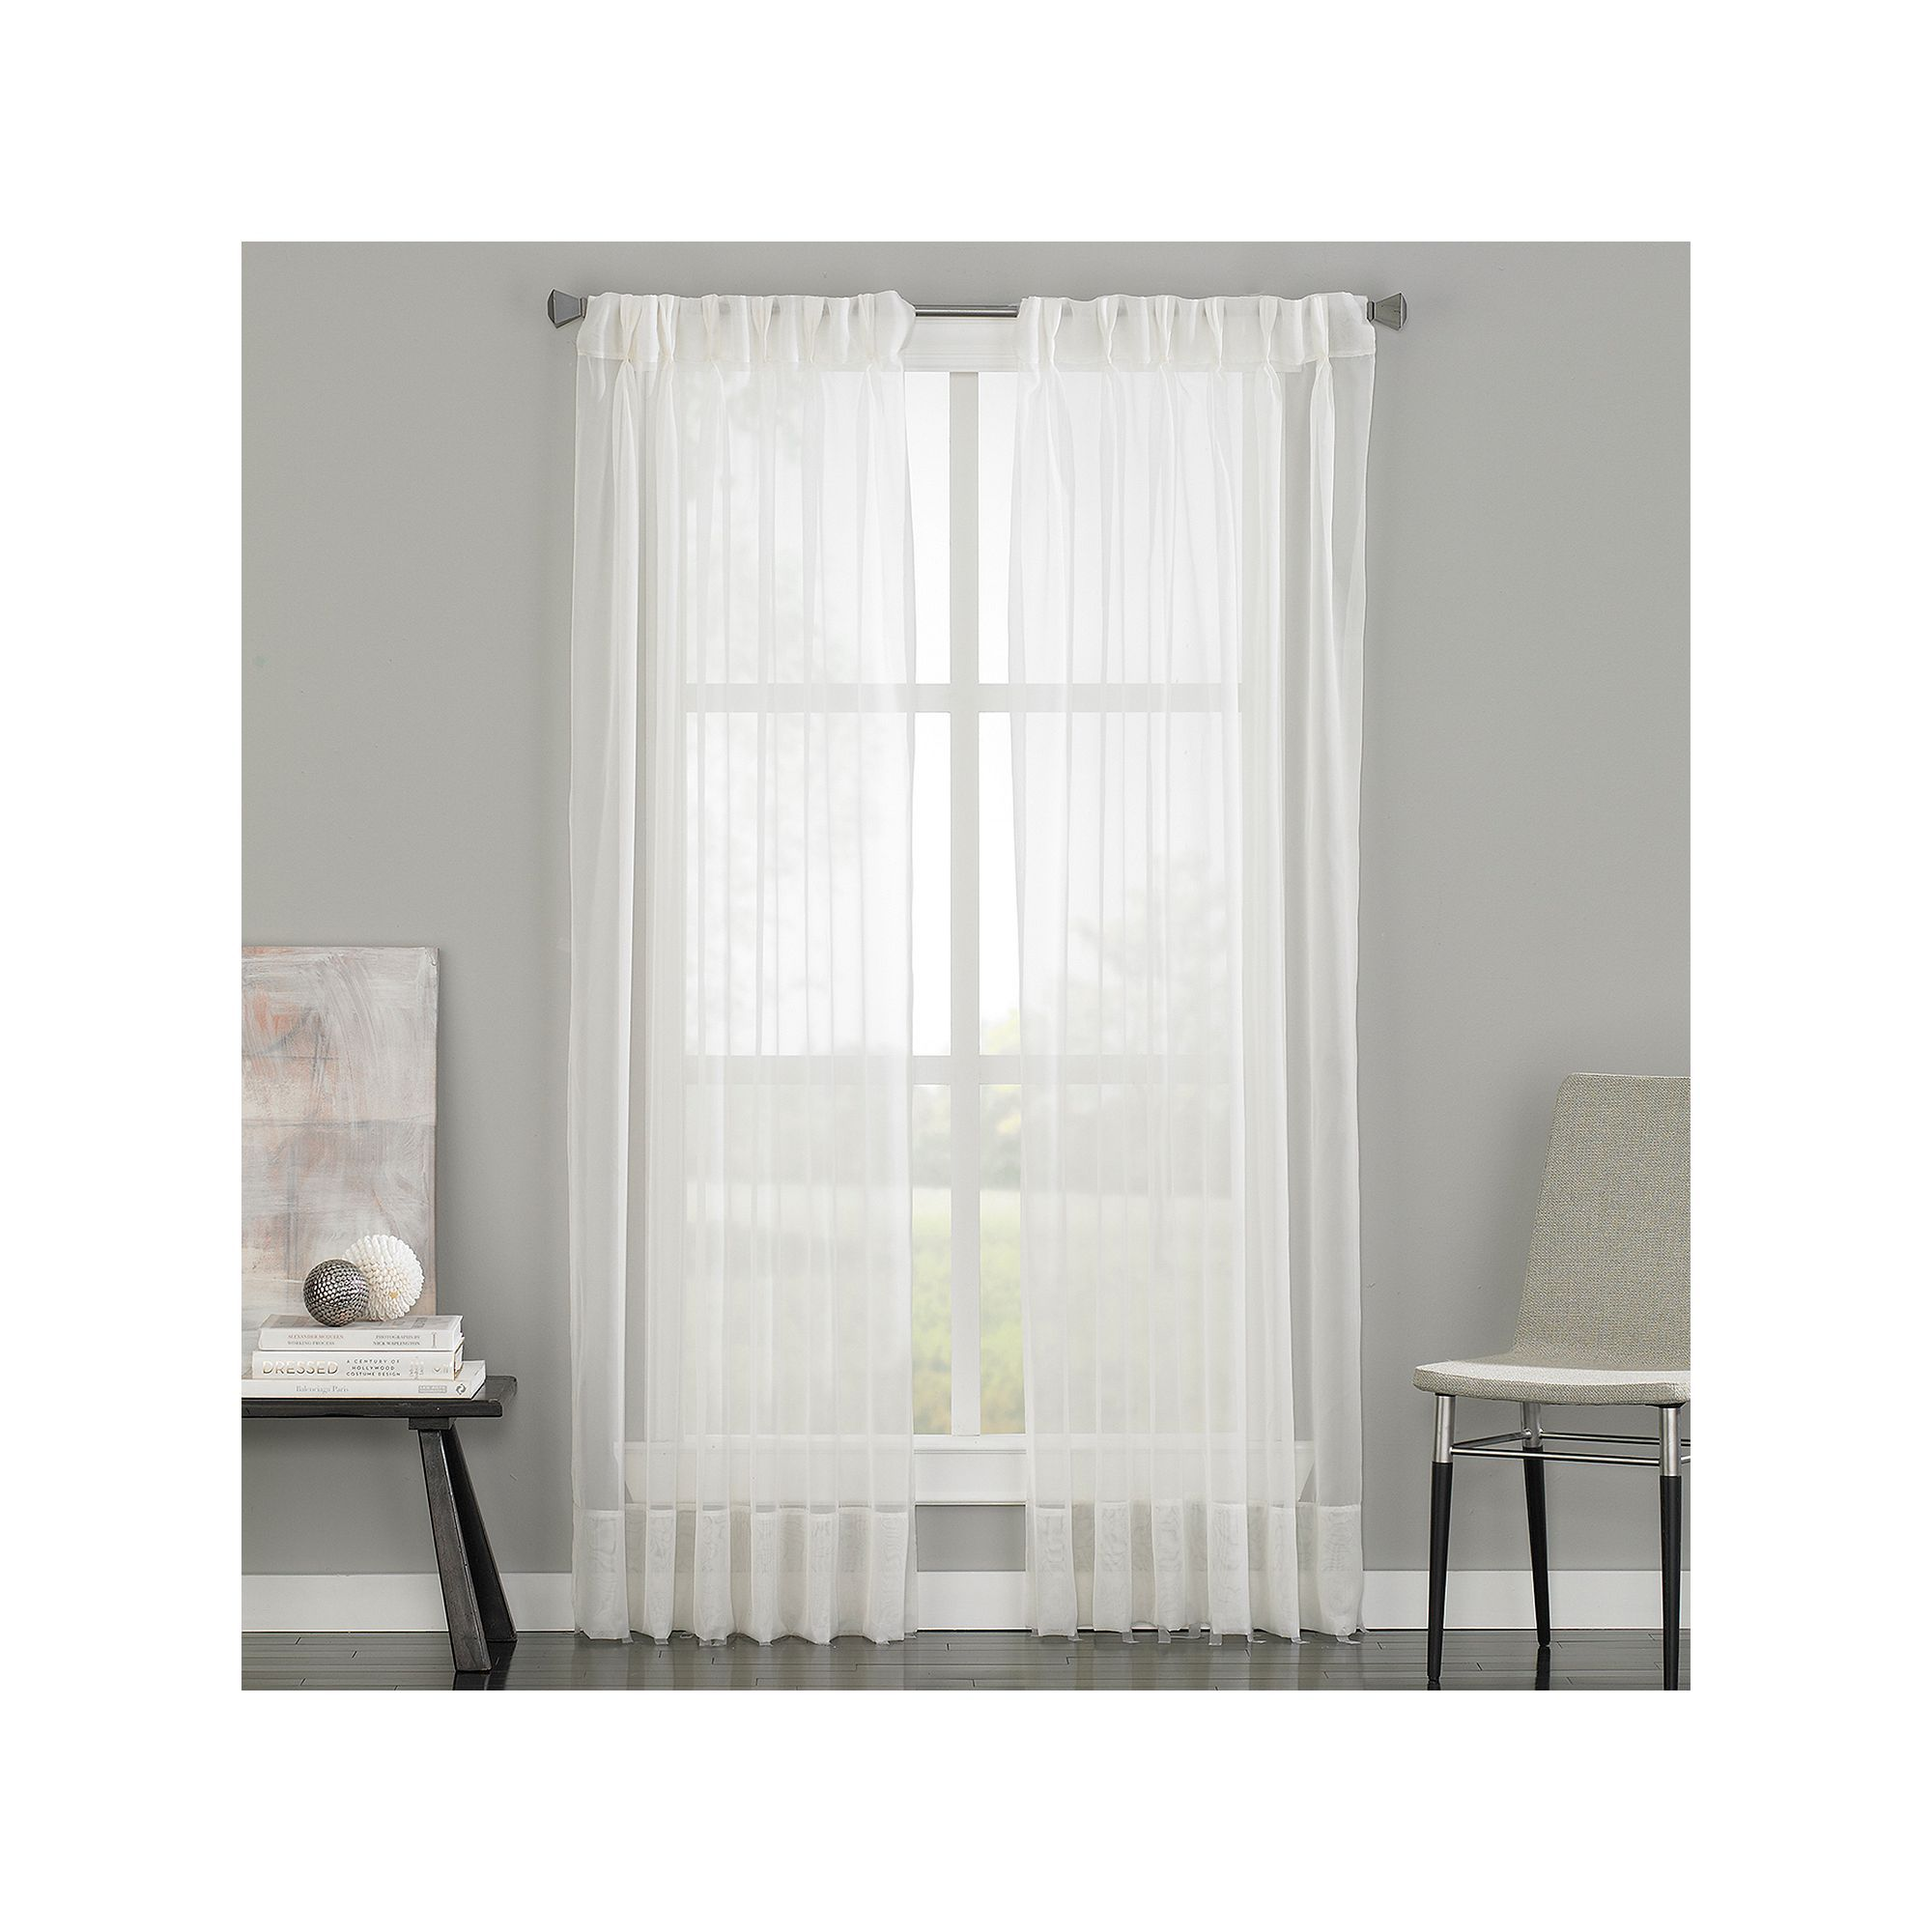 alamo sheer curtains voile pin panel curtain smart square window insulating